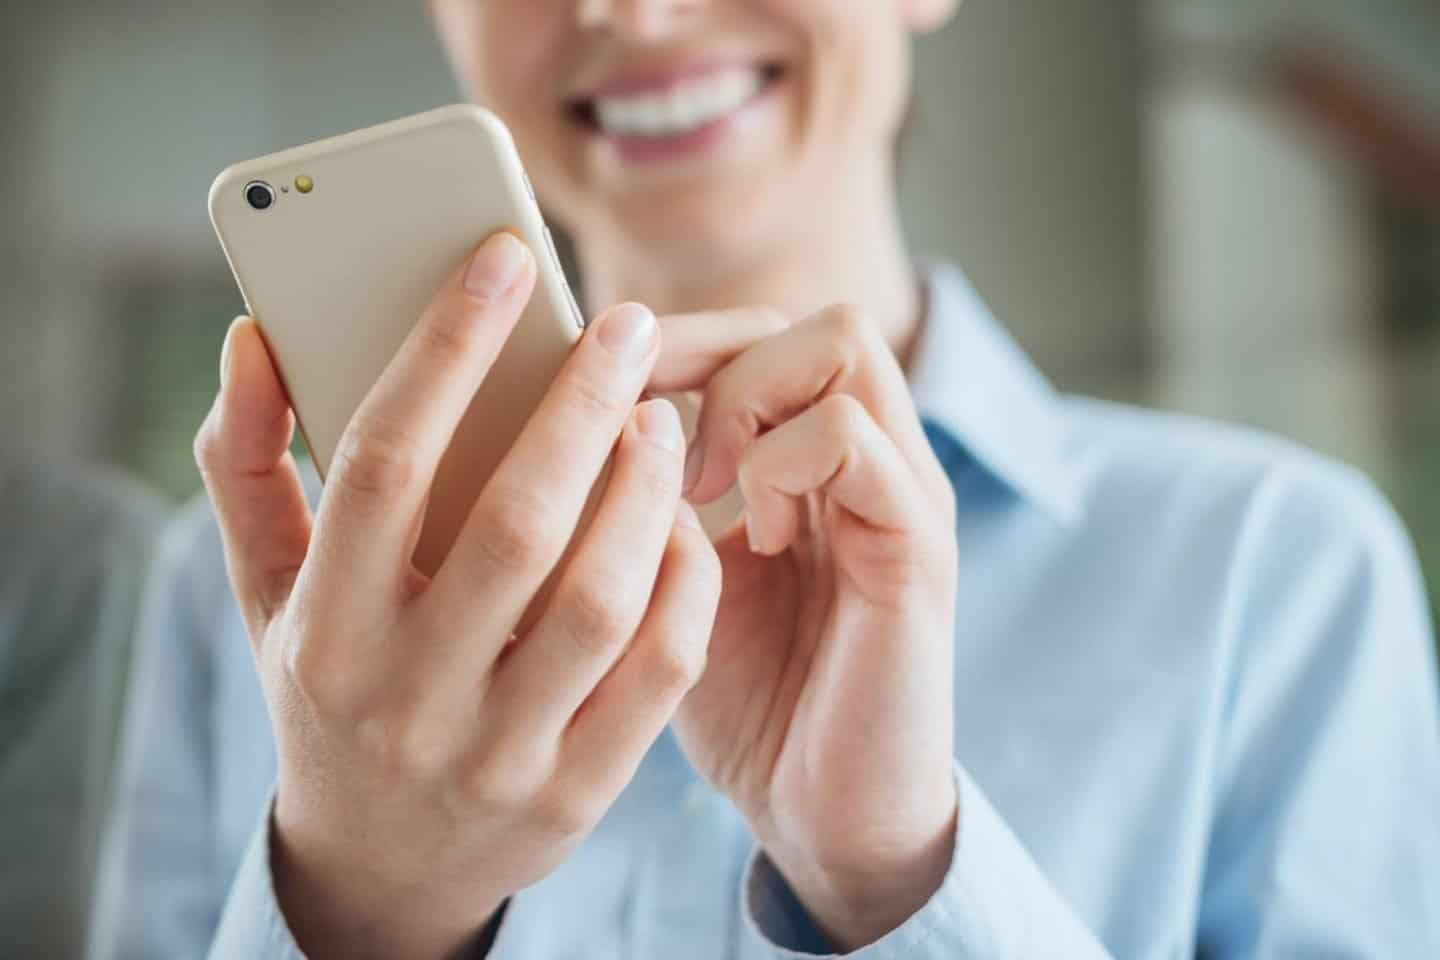 How to Search for the Best Mobile Phone Contract